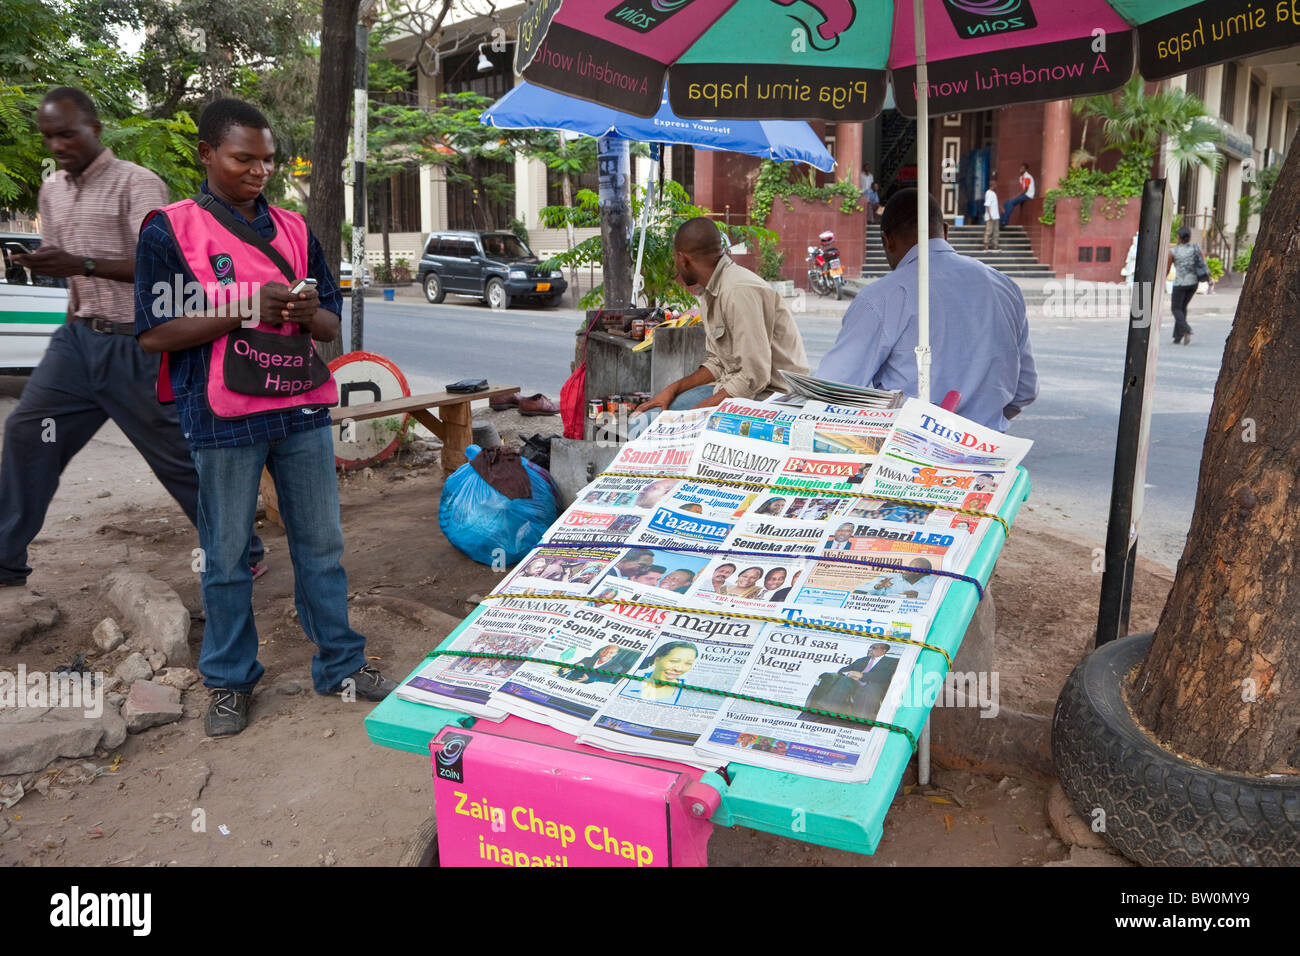 Dar es Salaam, Tanzania. Newspaper Vendor Checking his Cell (Mobile) Phone. Tanzania has many Swahili-language newspapers. - Stock Image